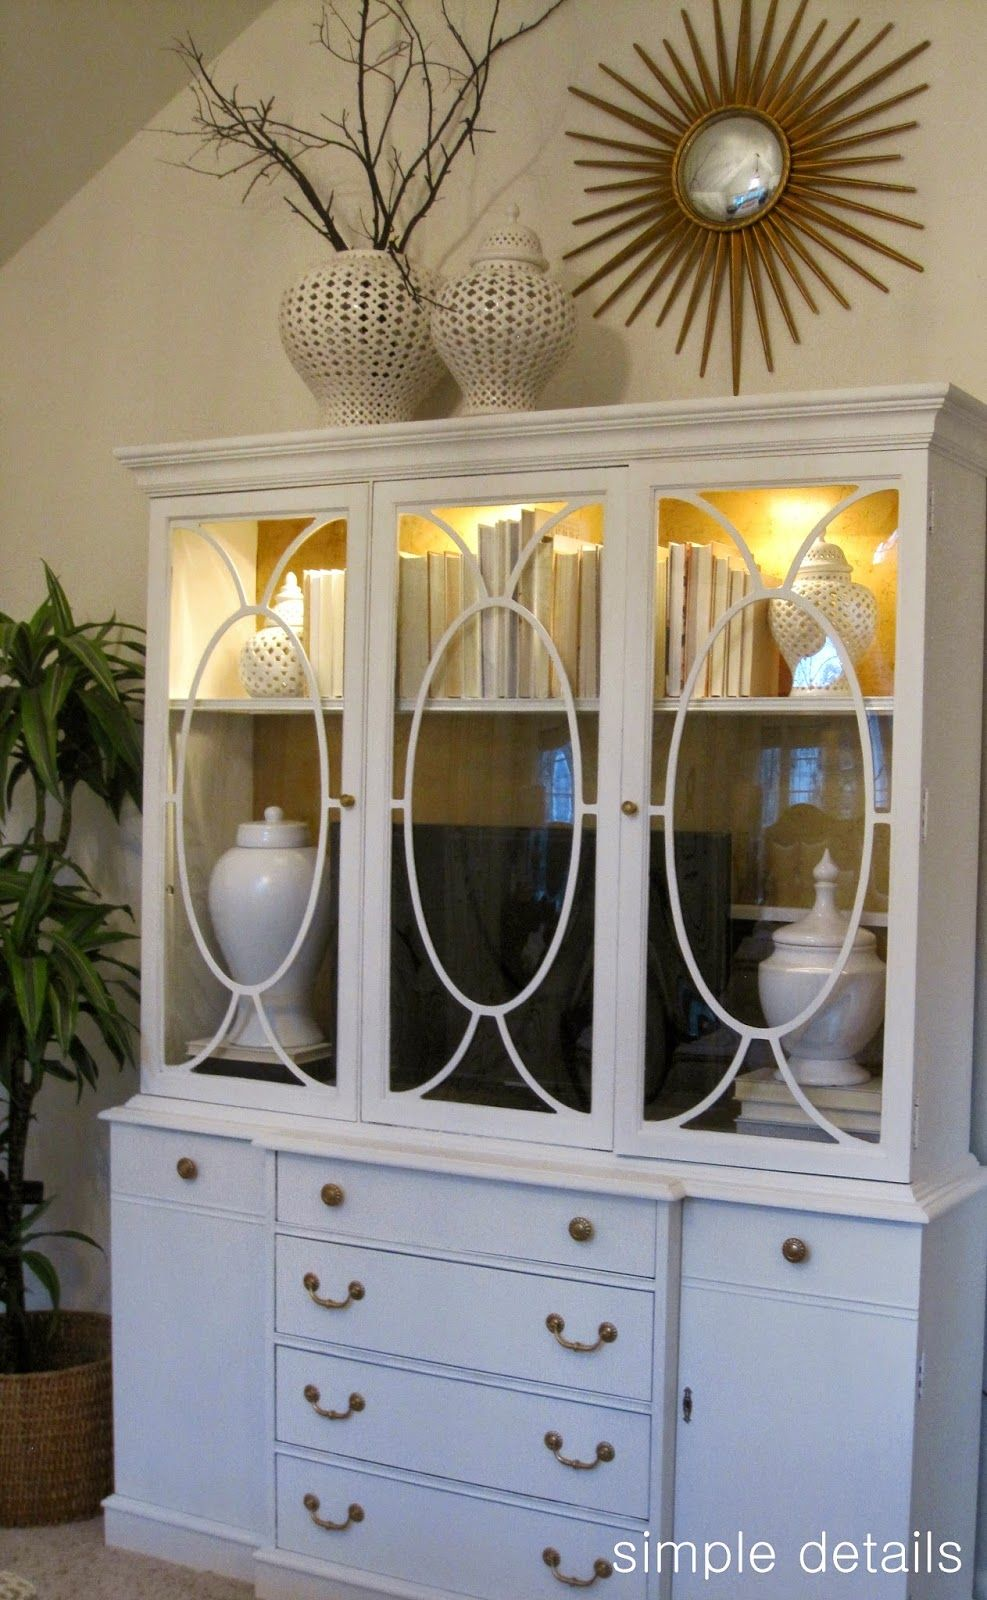 Master bedroom entertainment centers  Simple Details one room challenge  a craigslist bedroom reveal